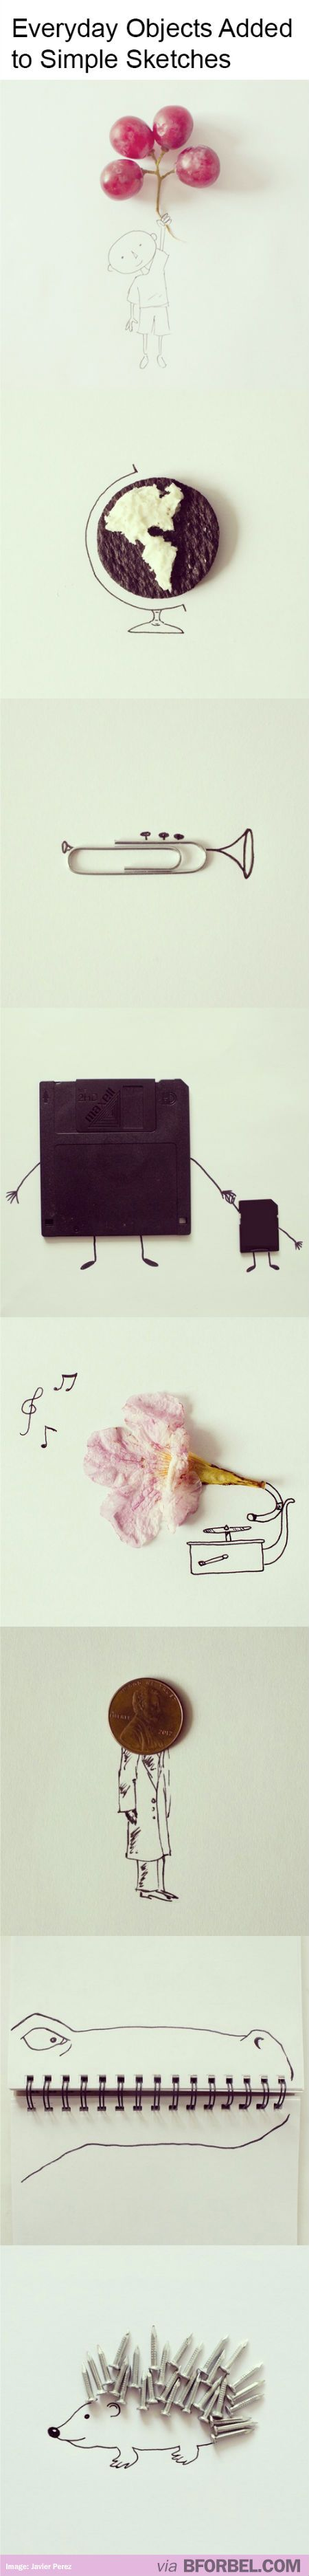 Turning everyday objects into whimsical art